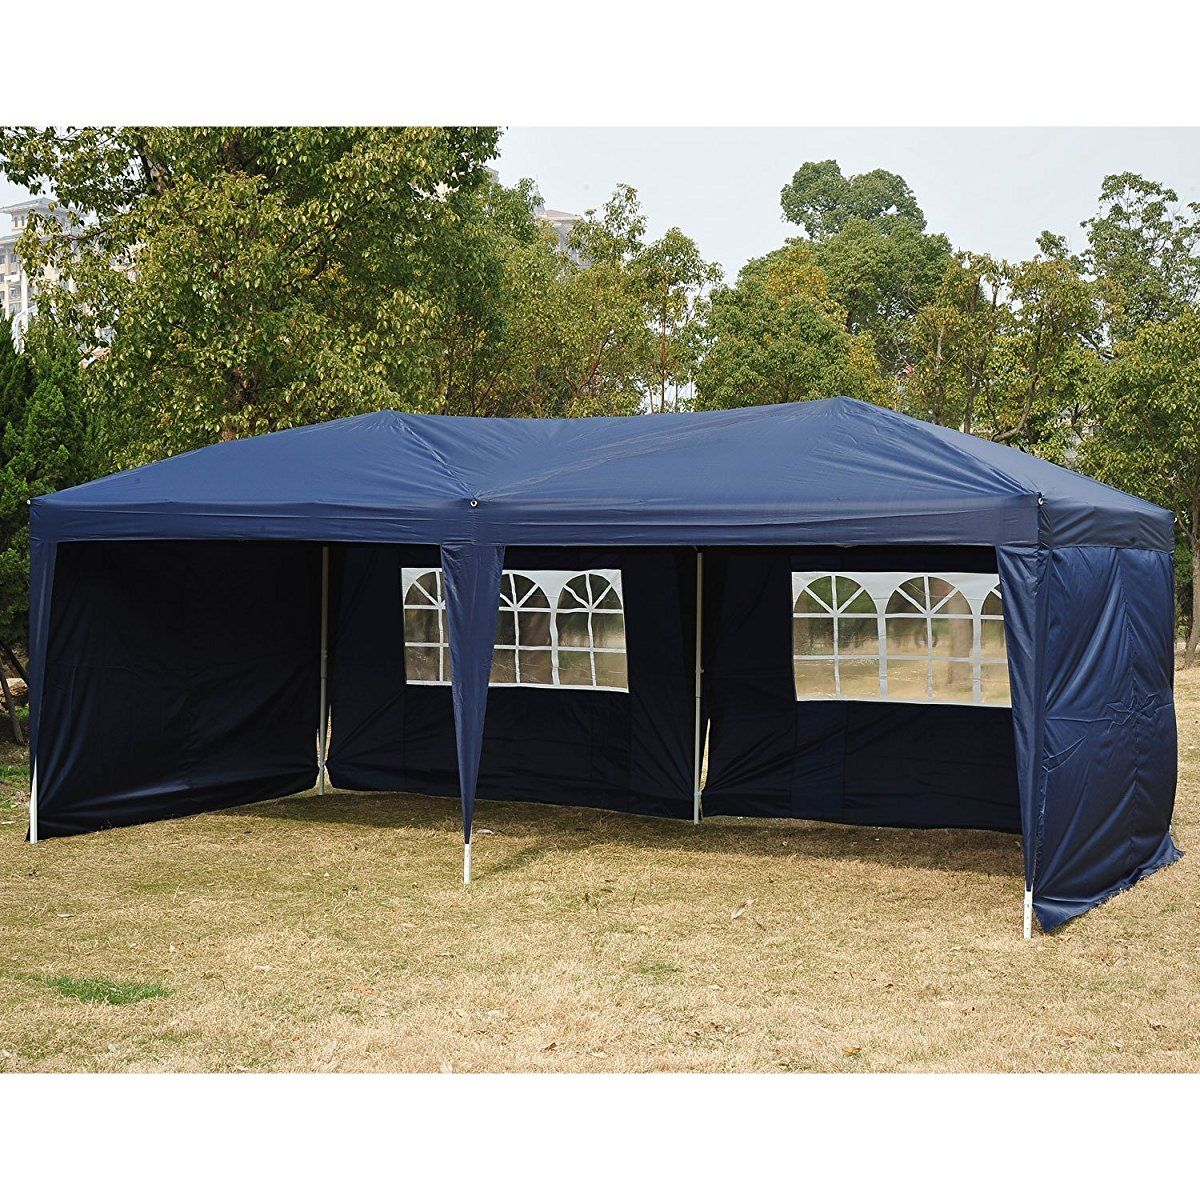 Outsunny 10 X 20 Easy Pop Up Canopy Party Tent Navy Blue W 4 Removable Sidewalls Pop Up Tent Canopy Tent Gazebo Canopy